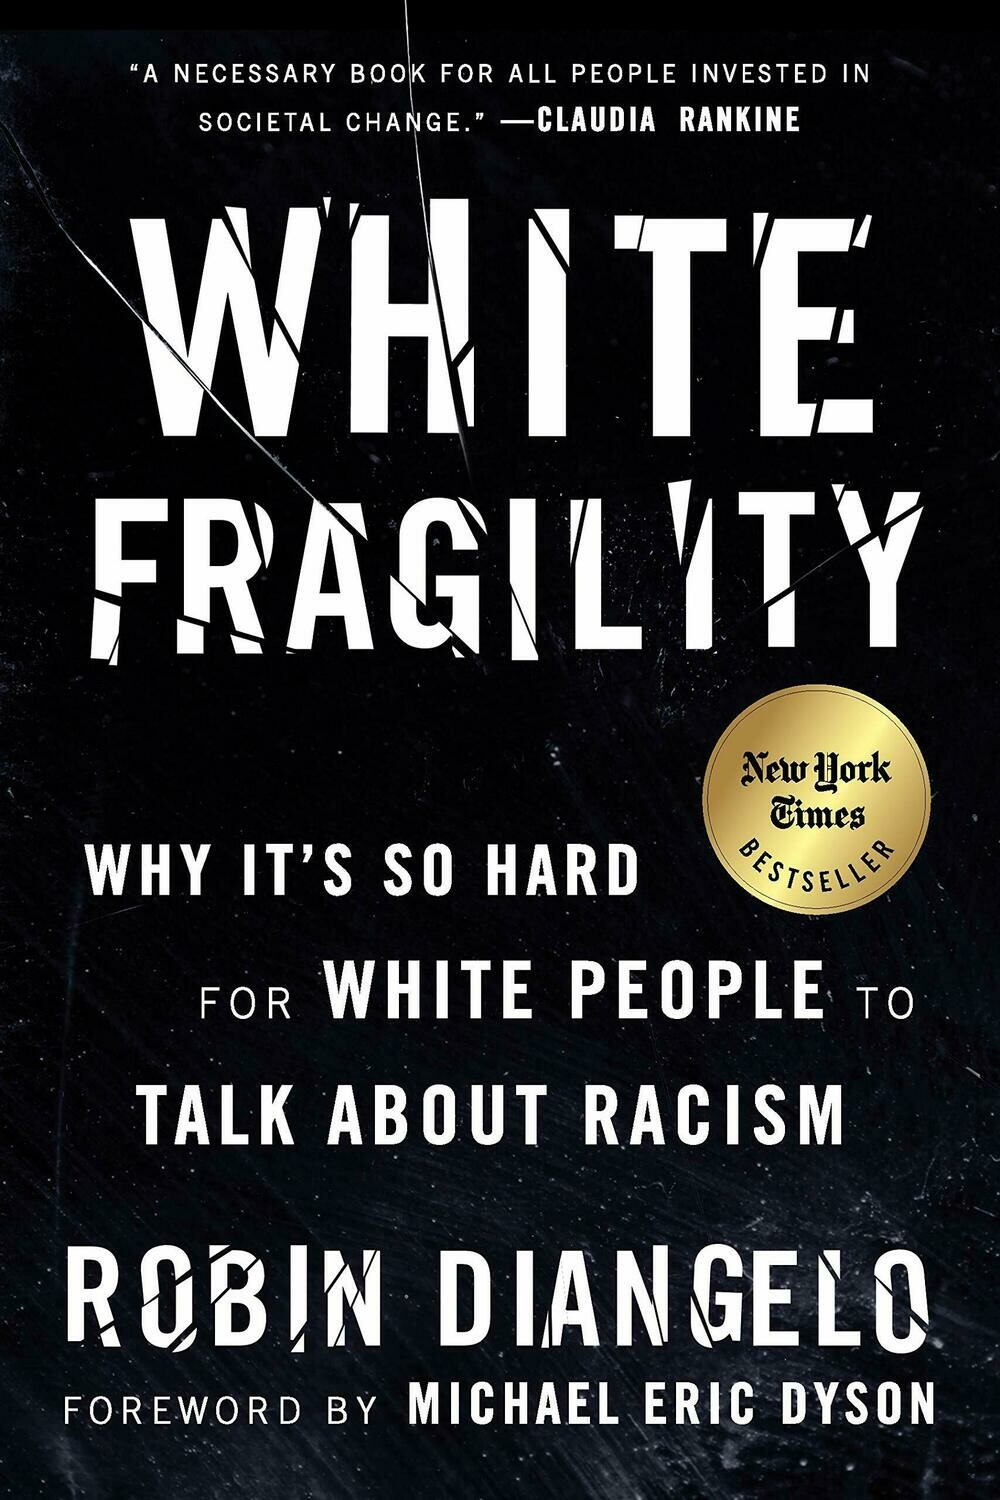 White Fragility: Why It's So Hard for White..By Robin DiAngelo, Michael Eric Dyson